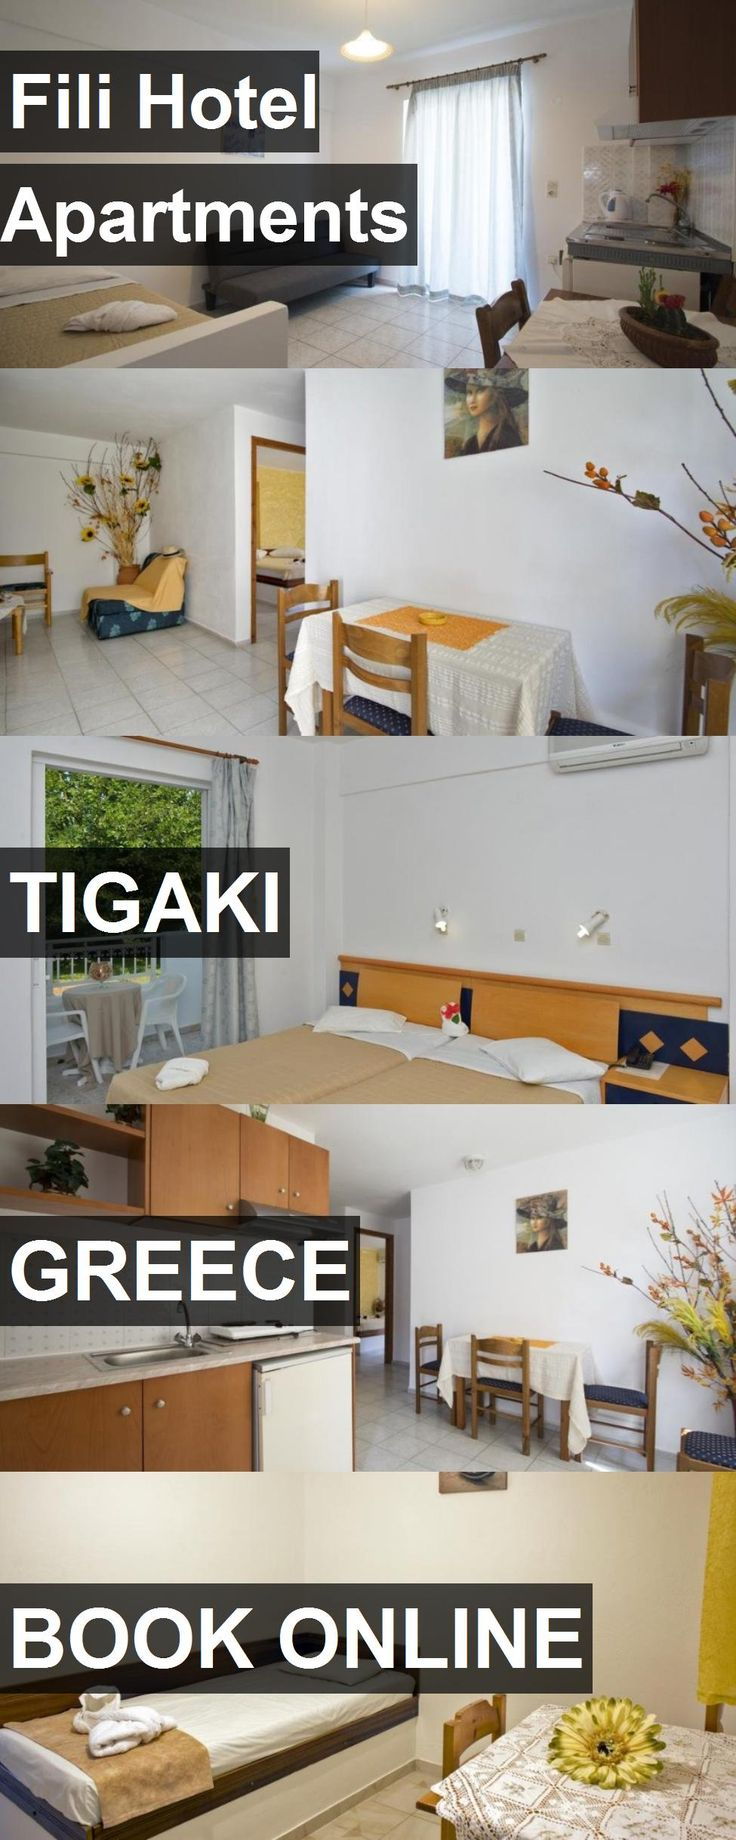 Hotel Fili Hotel Apartments in Tigaki, Greece. For more information, photos, reviews and best prices please follow the link. #Greece #Tigaki #FiliHotelApartments #hotel #travel #vacation